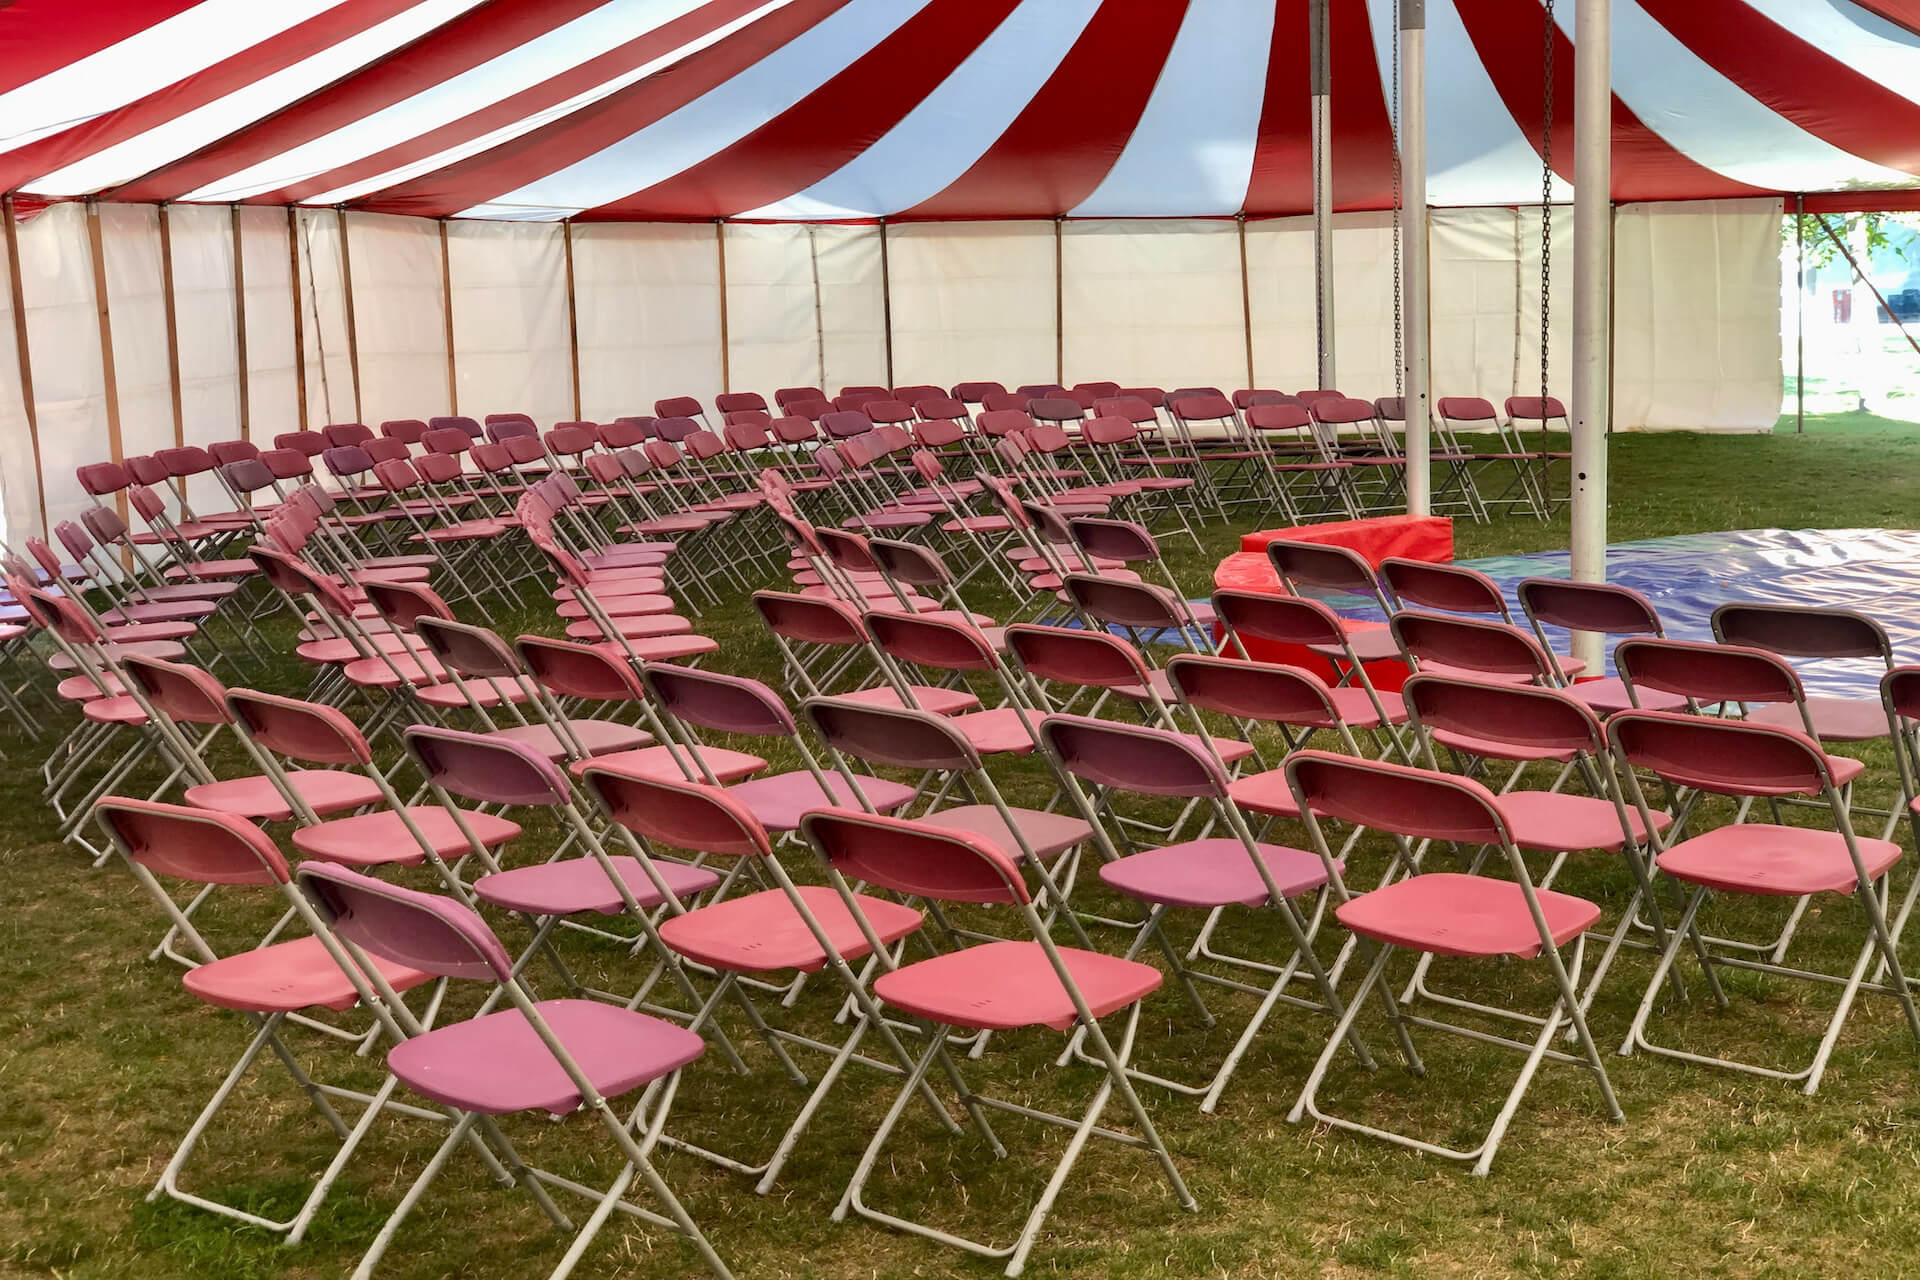 Audience seating arrangements in marquee theatre tent